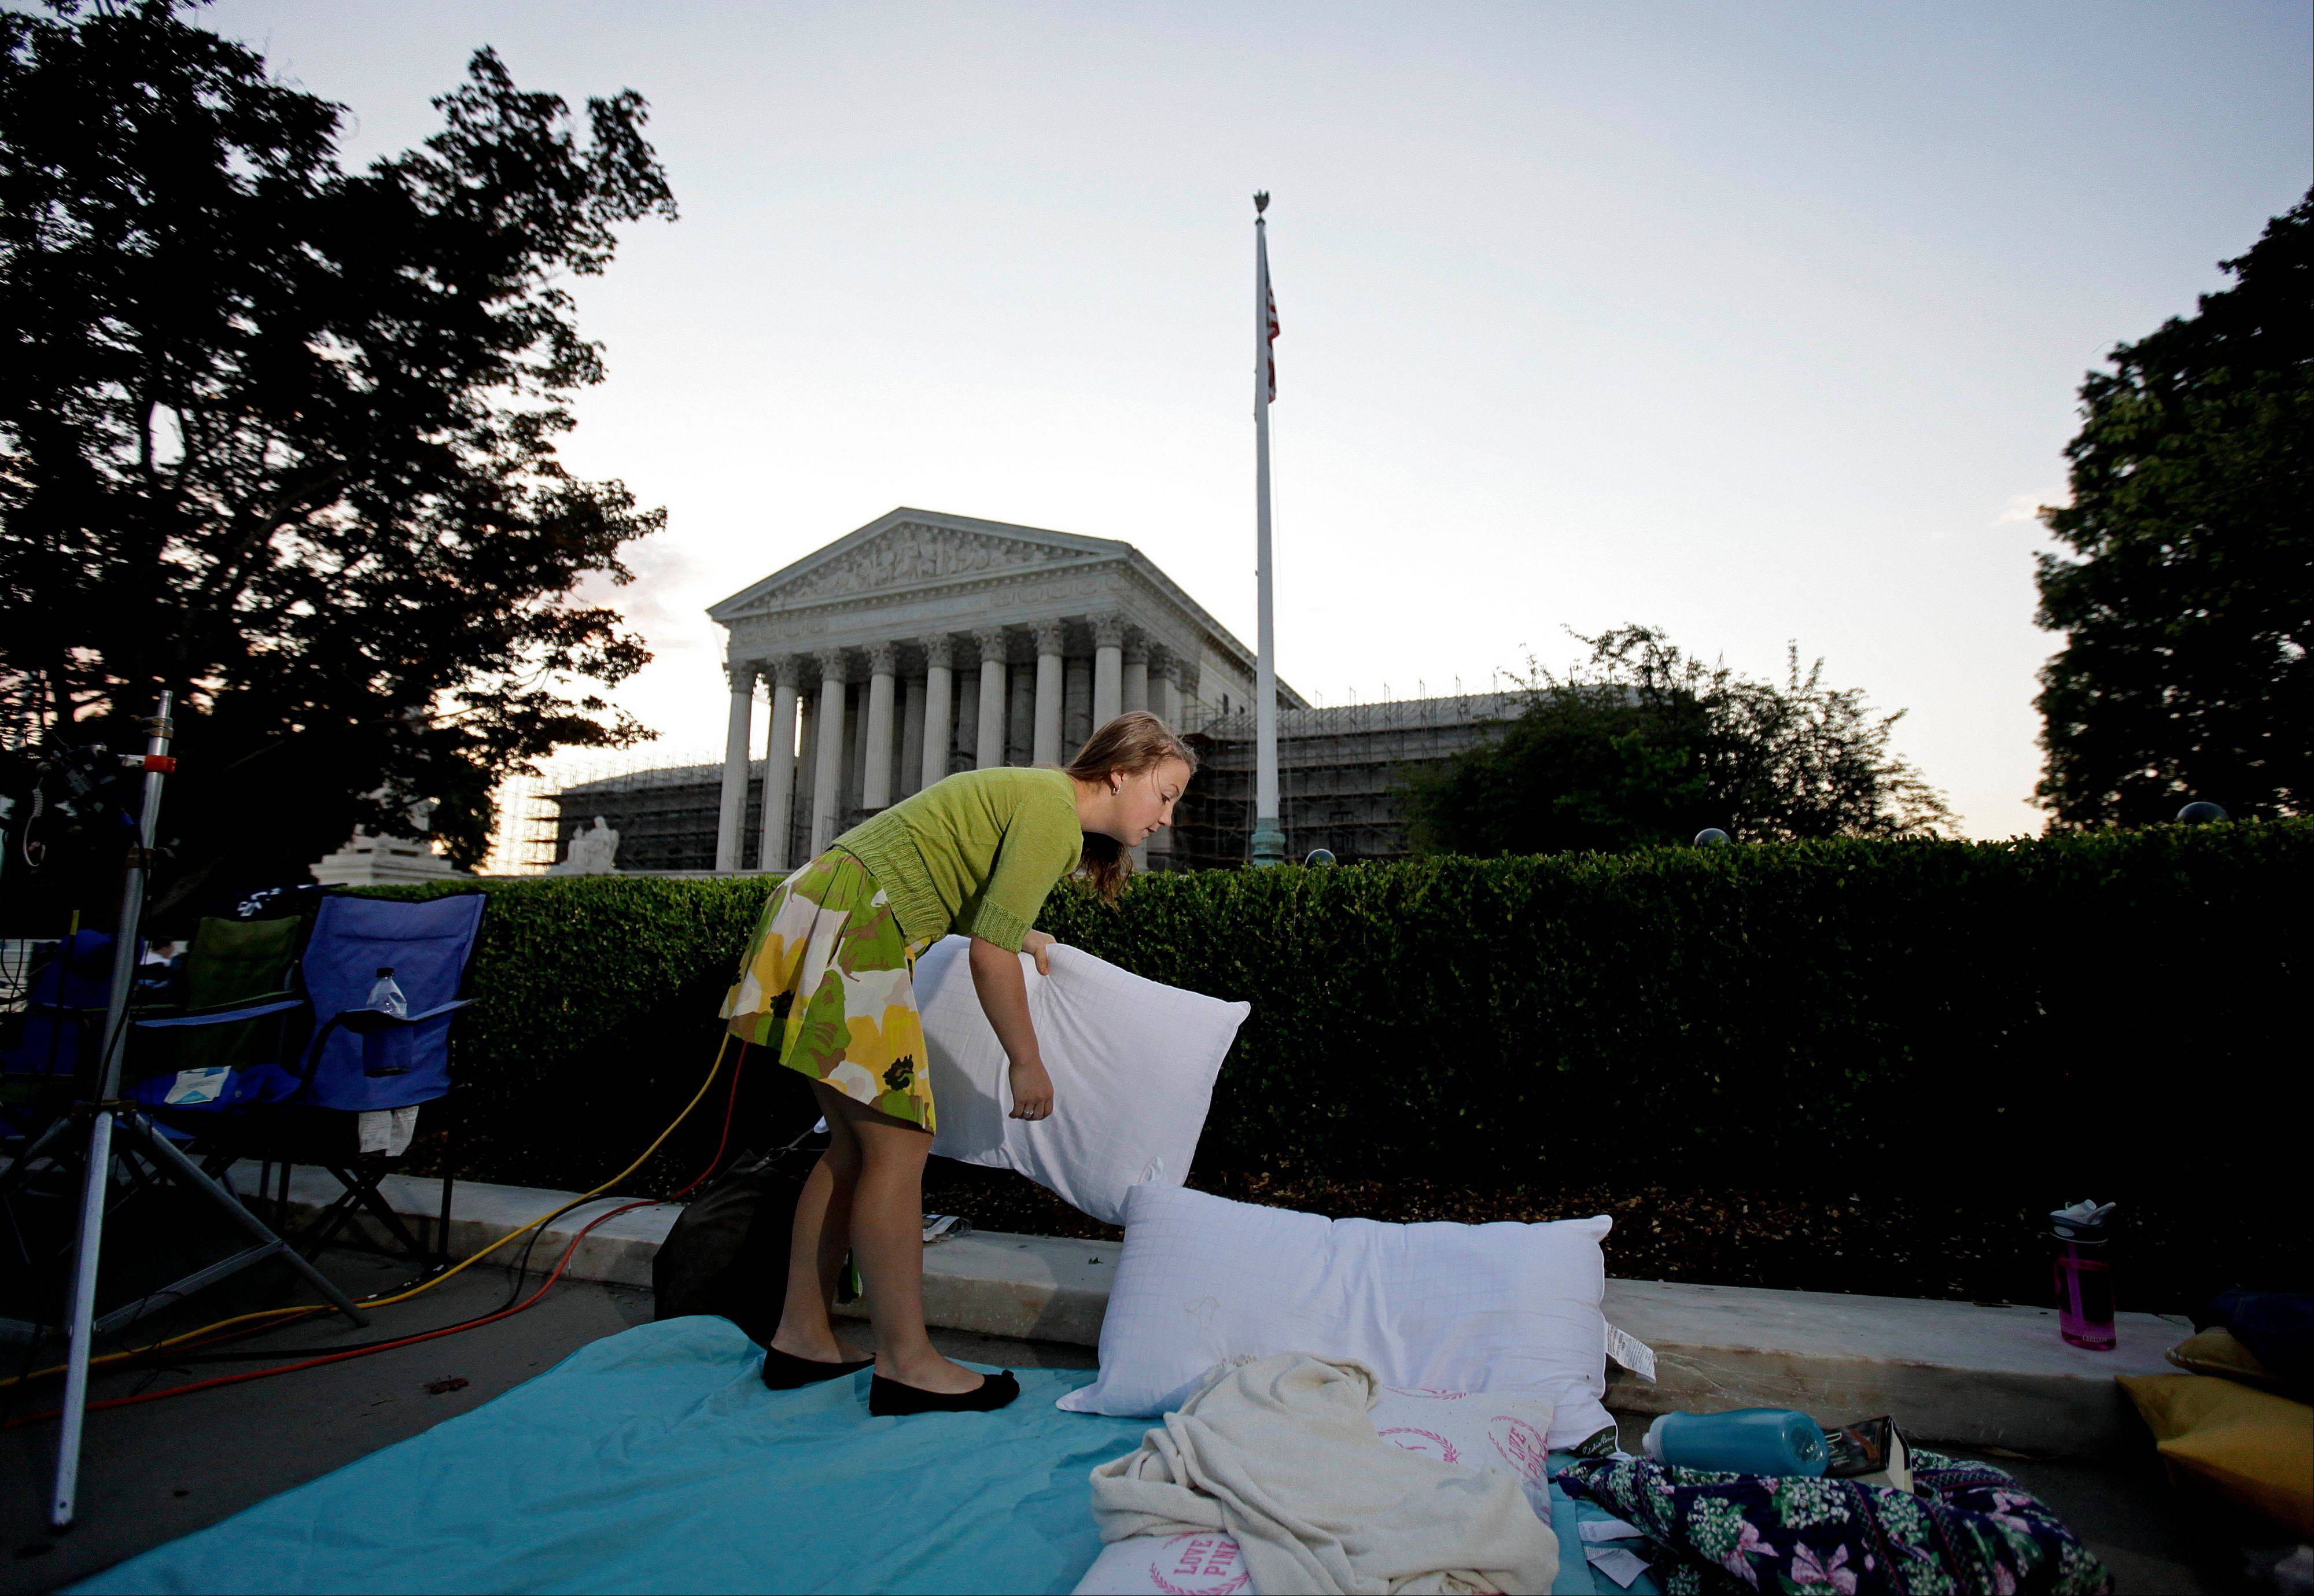 Maggie O'Brien, 20, of Syracuse, N.Y., wakes up after spending the night sleeping outside the Supreme Court Thursday, June 28, 2012, in Washington. Saving its biggest case for last, the Supreme Court is expected to announce its verdict Thursday on President Barack Obama's health care law.